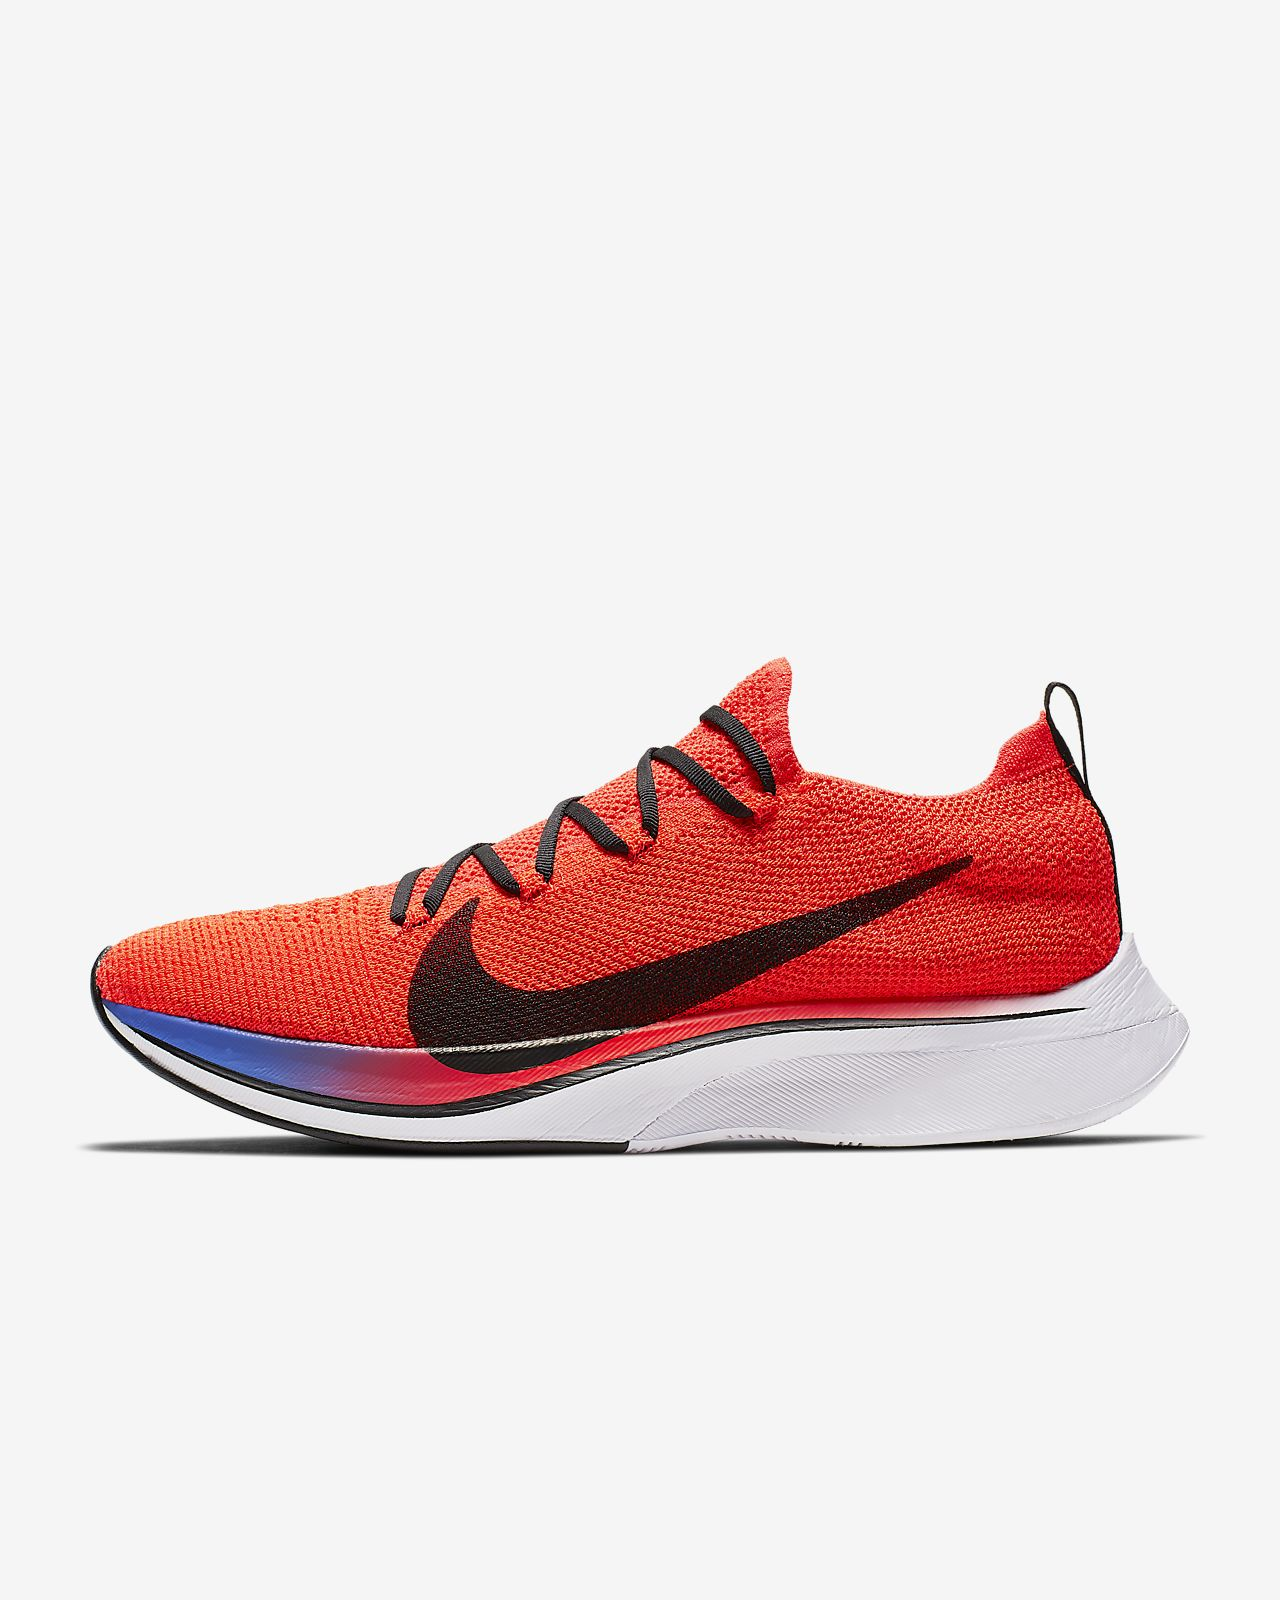 on sale 9593d 761e2 ... Nike Vaporfly 4% Flyknit Running Shoe